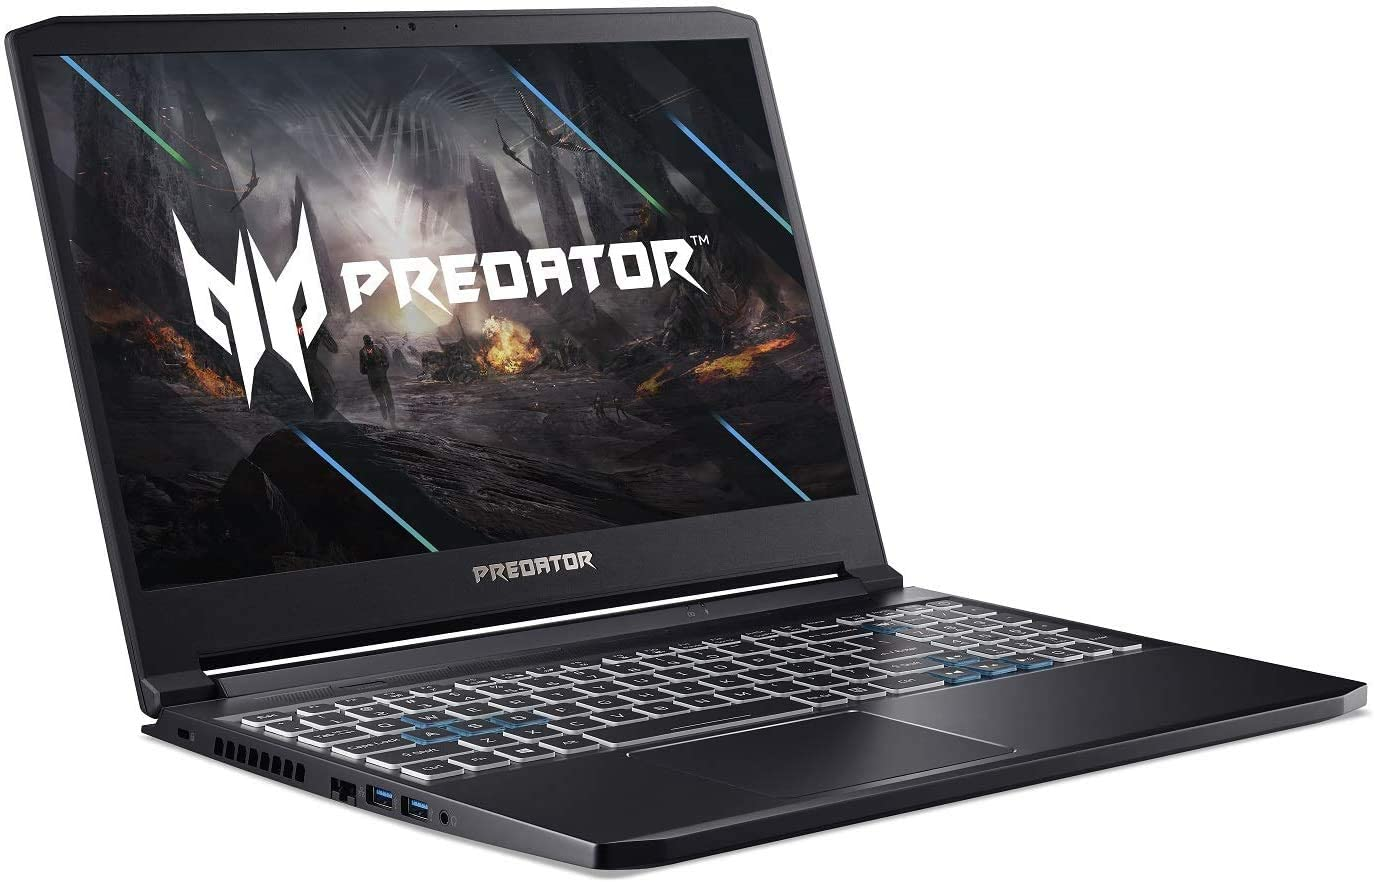 61j2R9bckAL. AC SL1375 10 Best Gaming Laptops for Rust in 2021 Reviews